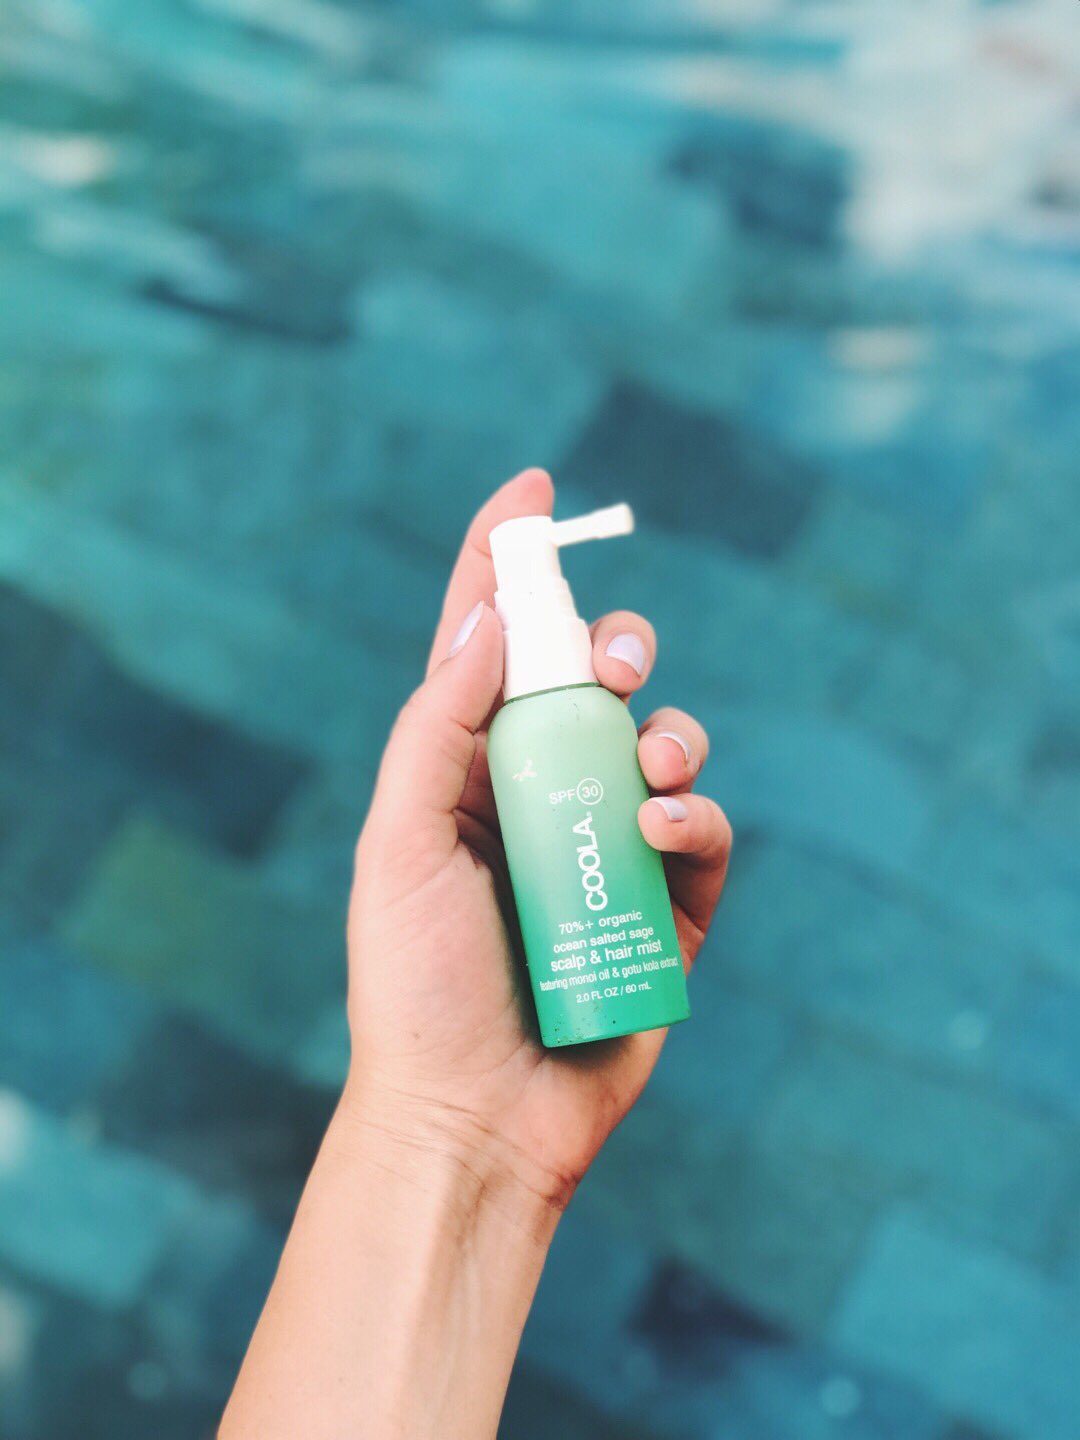 Uzivatel Coola Na Twitteru Keep Your Locks Looking Fresh With Our Organic Spf 30 Scalp Hair Mist 70 Certified Organic Ingredients Lightweight With No Oily Residue Helps